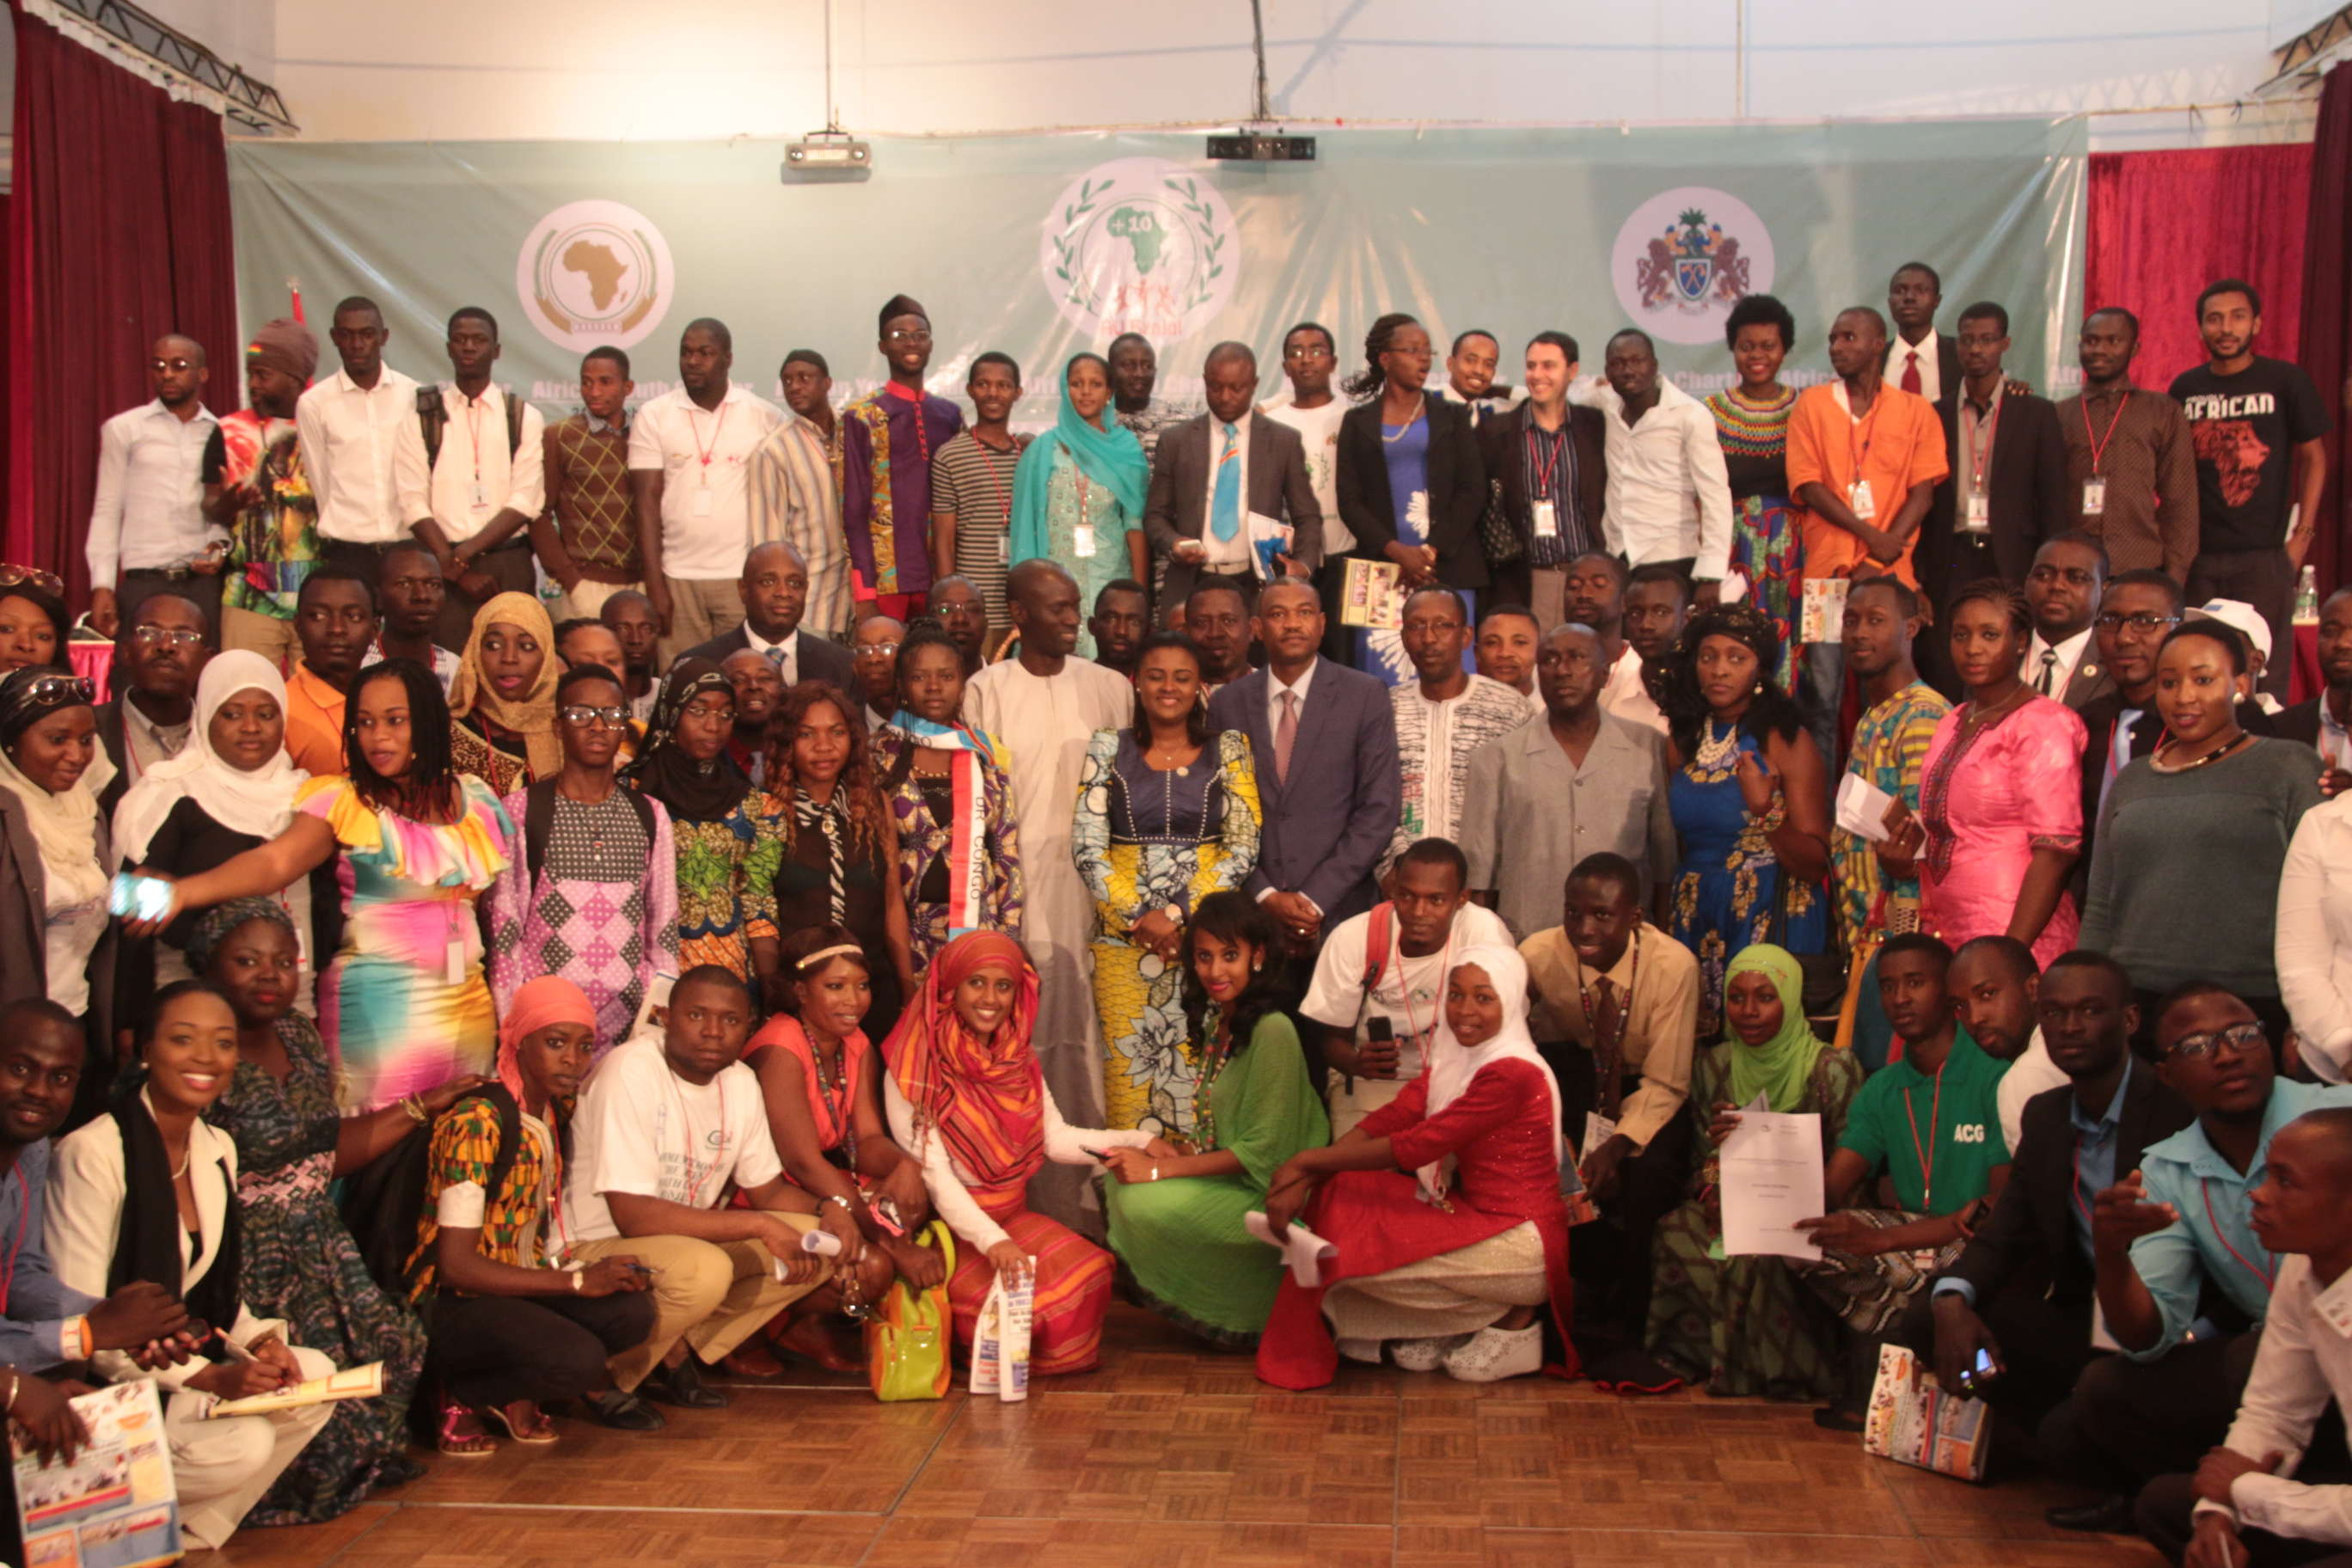 African Youth Commission – United in action for African Unity